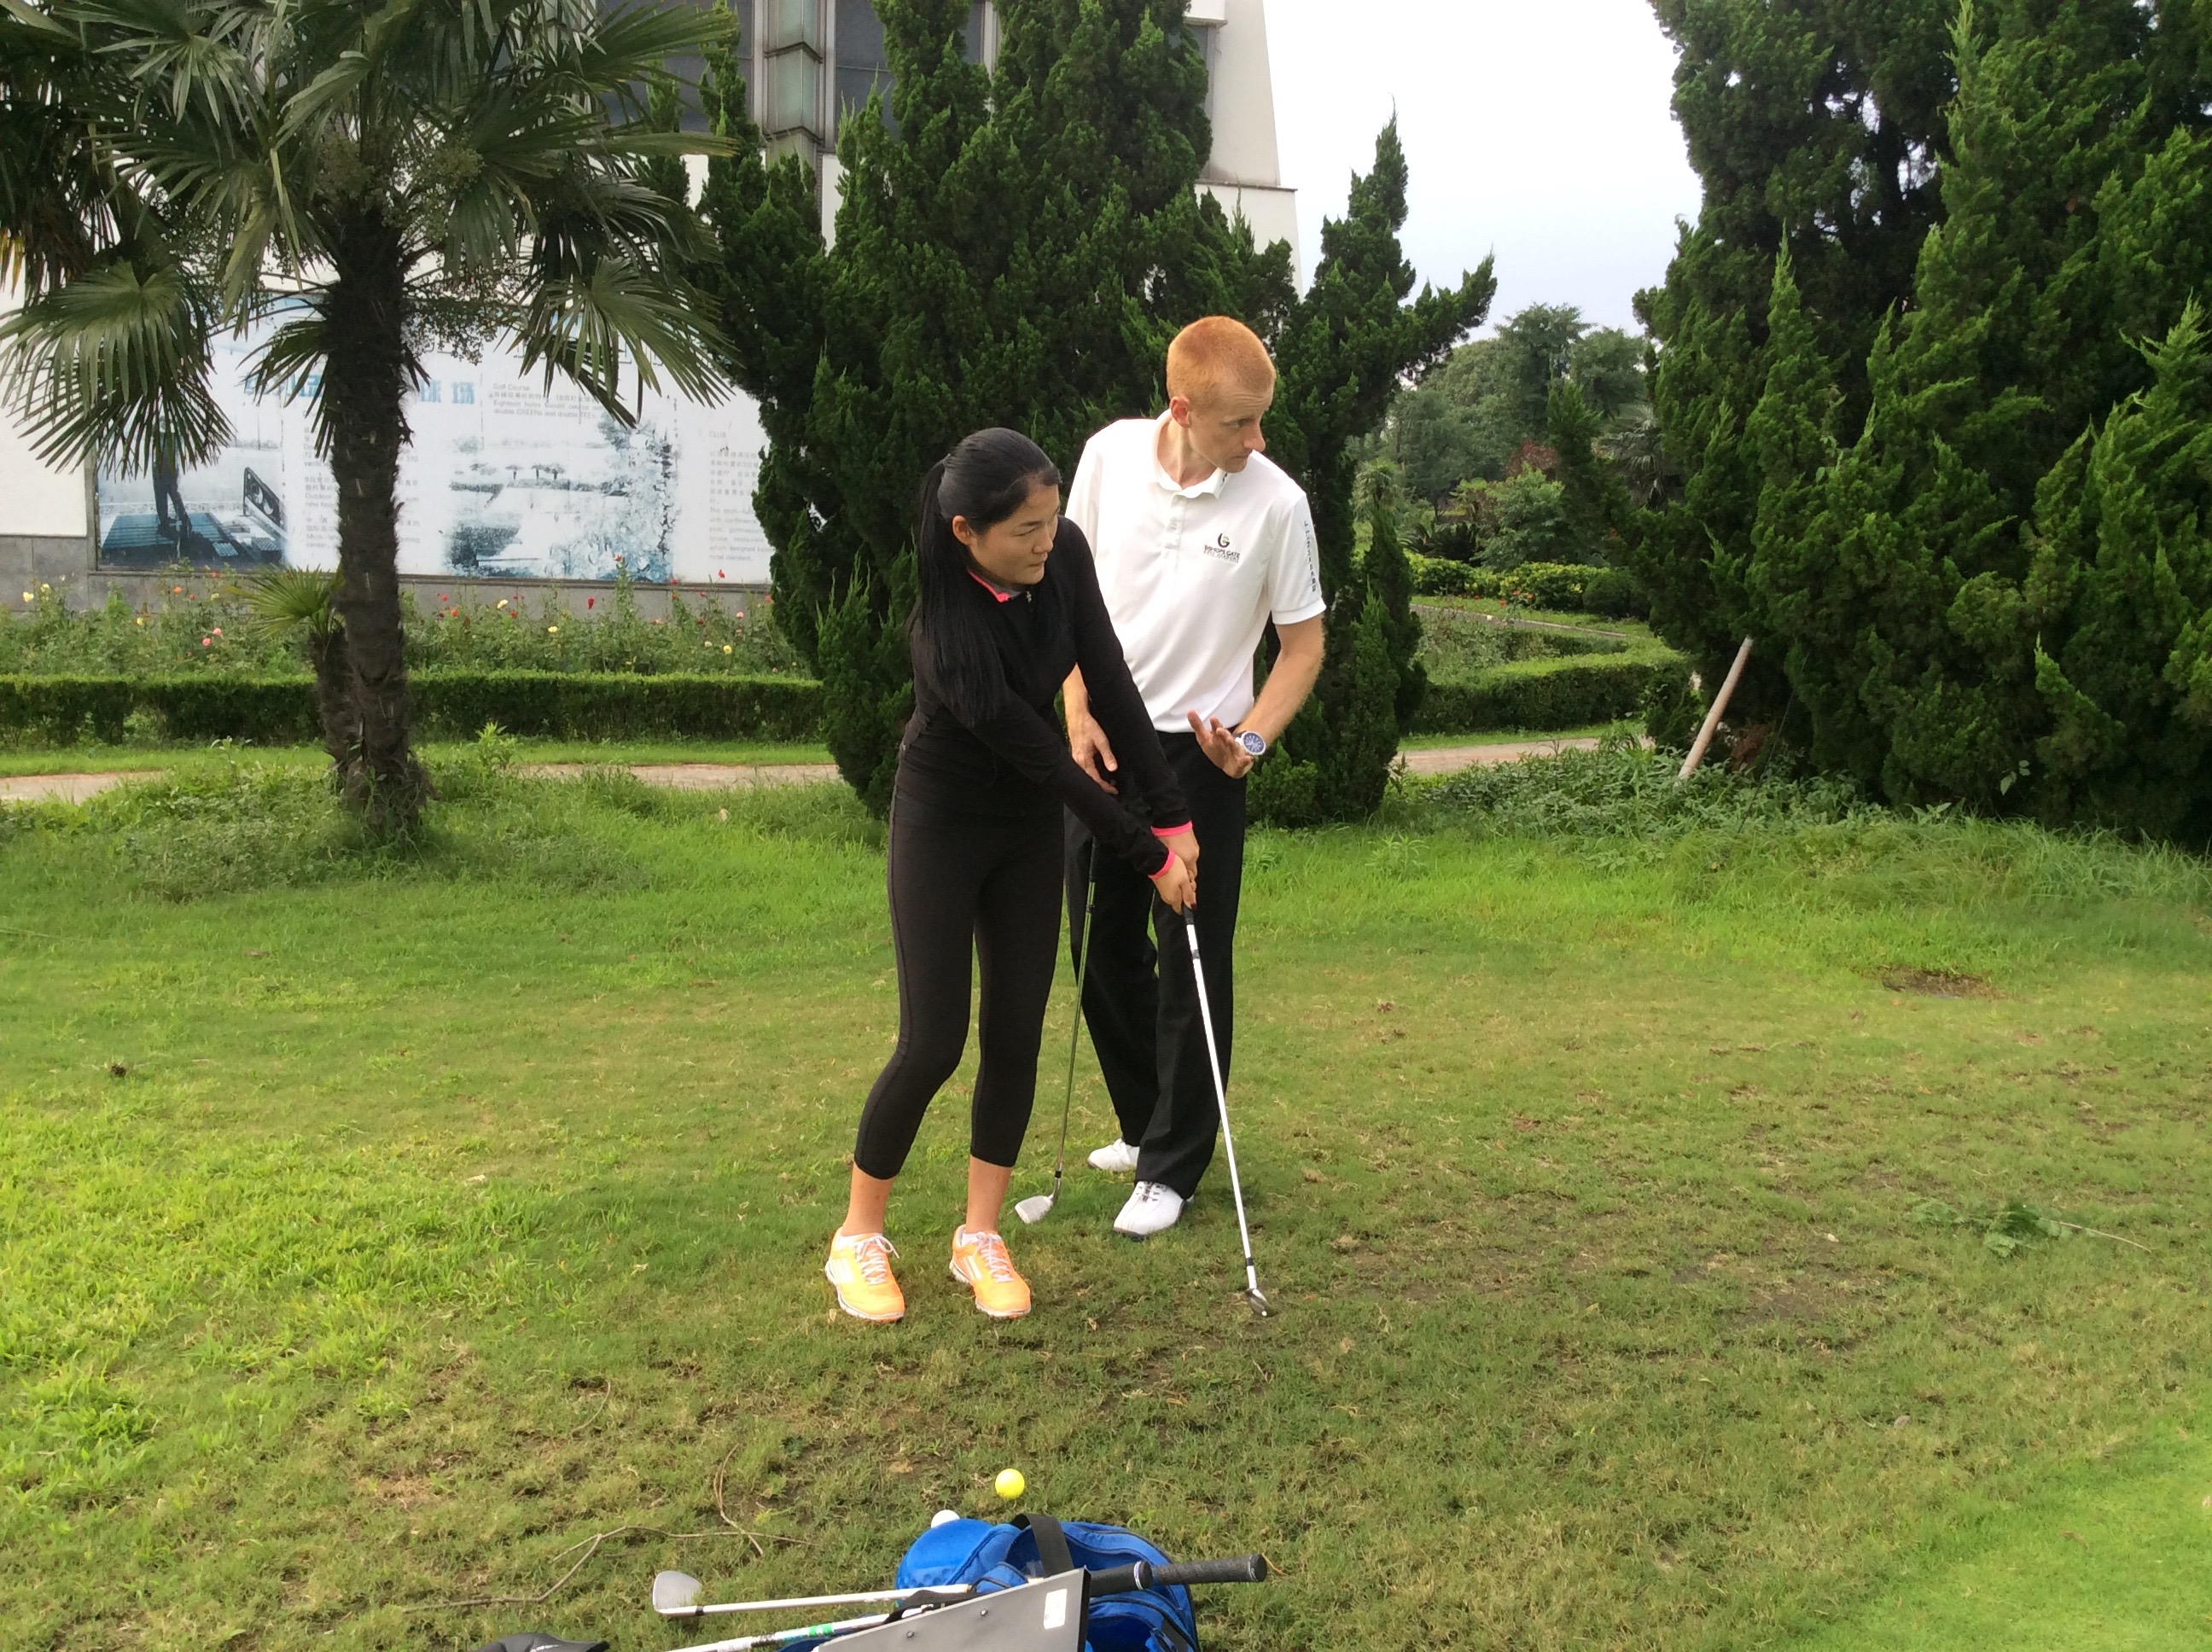 Working with Liu Jiao (CLPGA Tour)